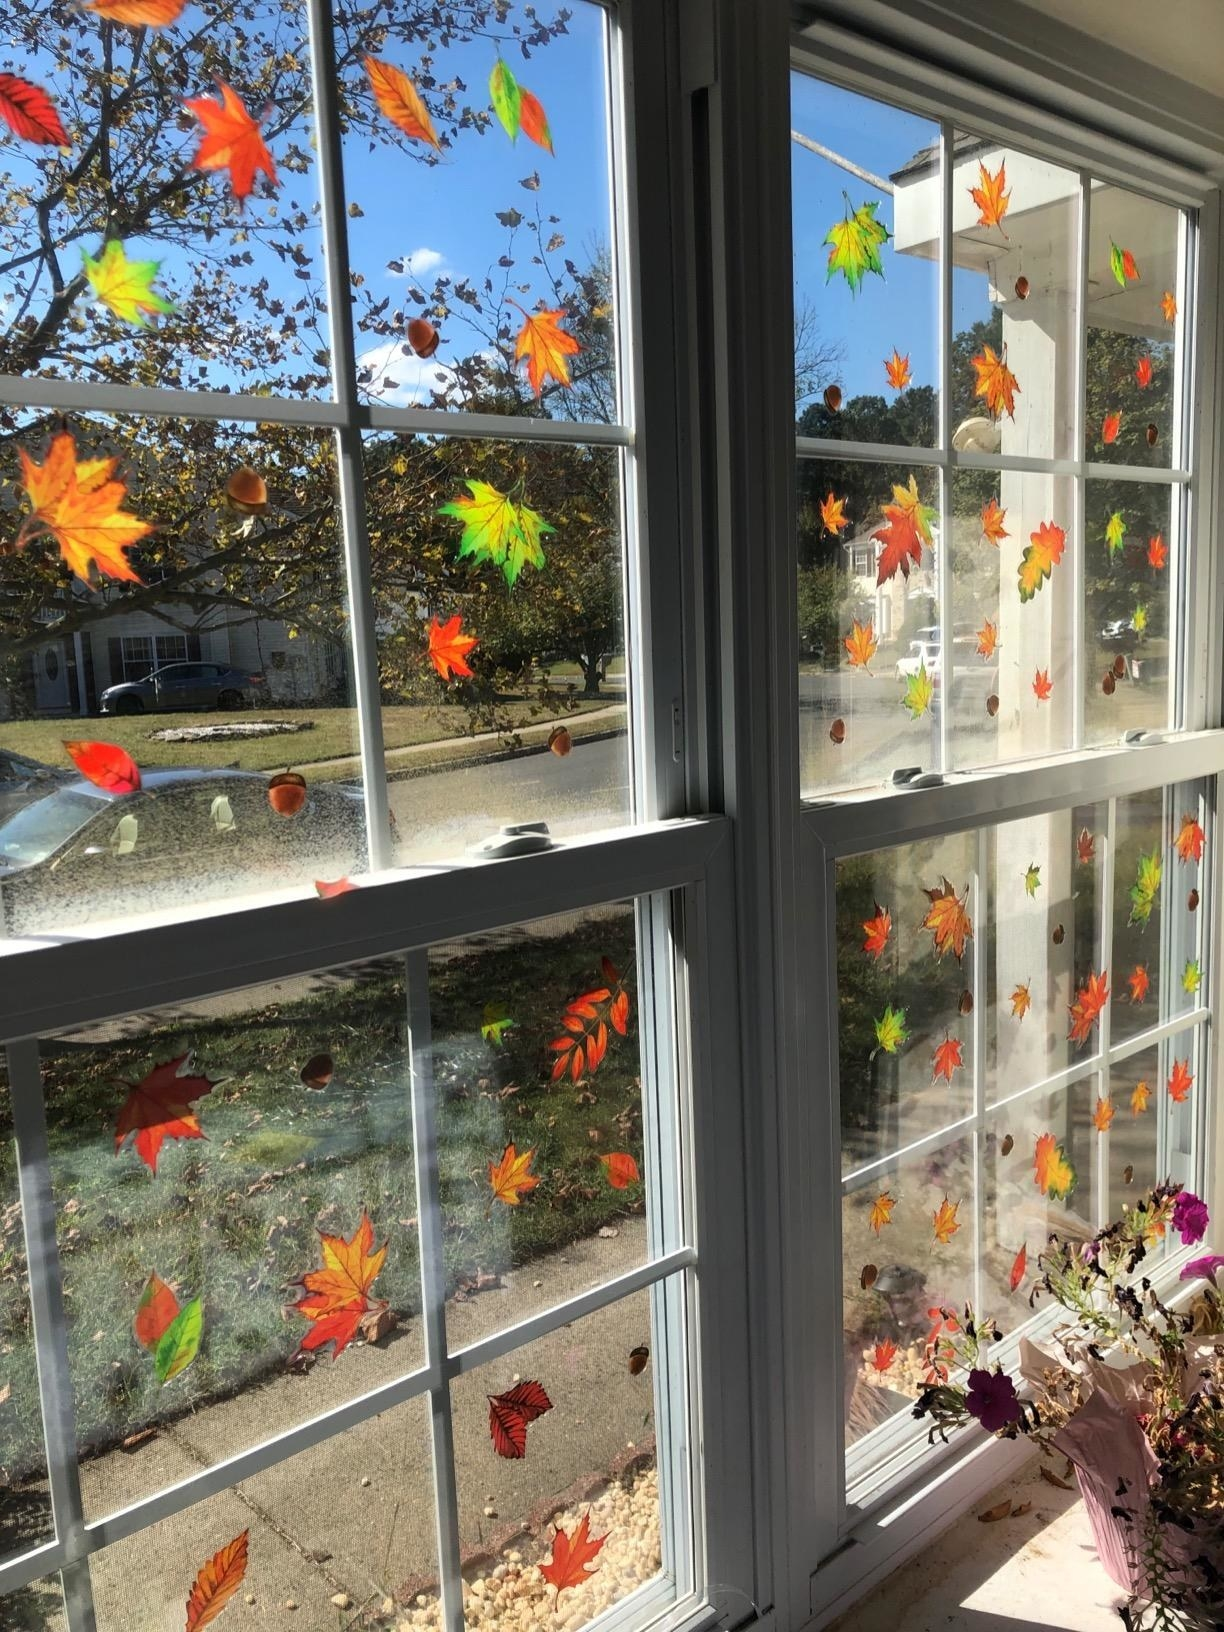 Red, orange, and green stick-on leaves applied to a clear window overlooking a street